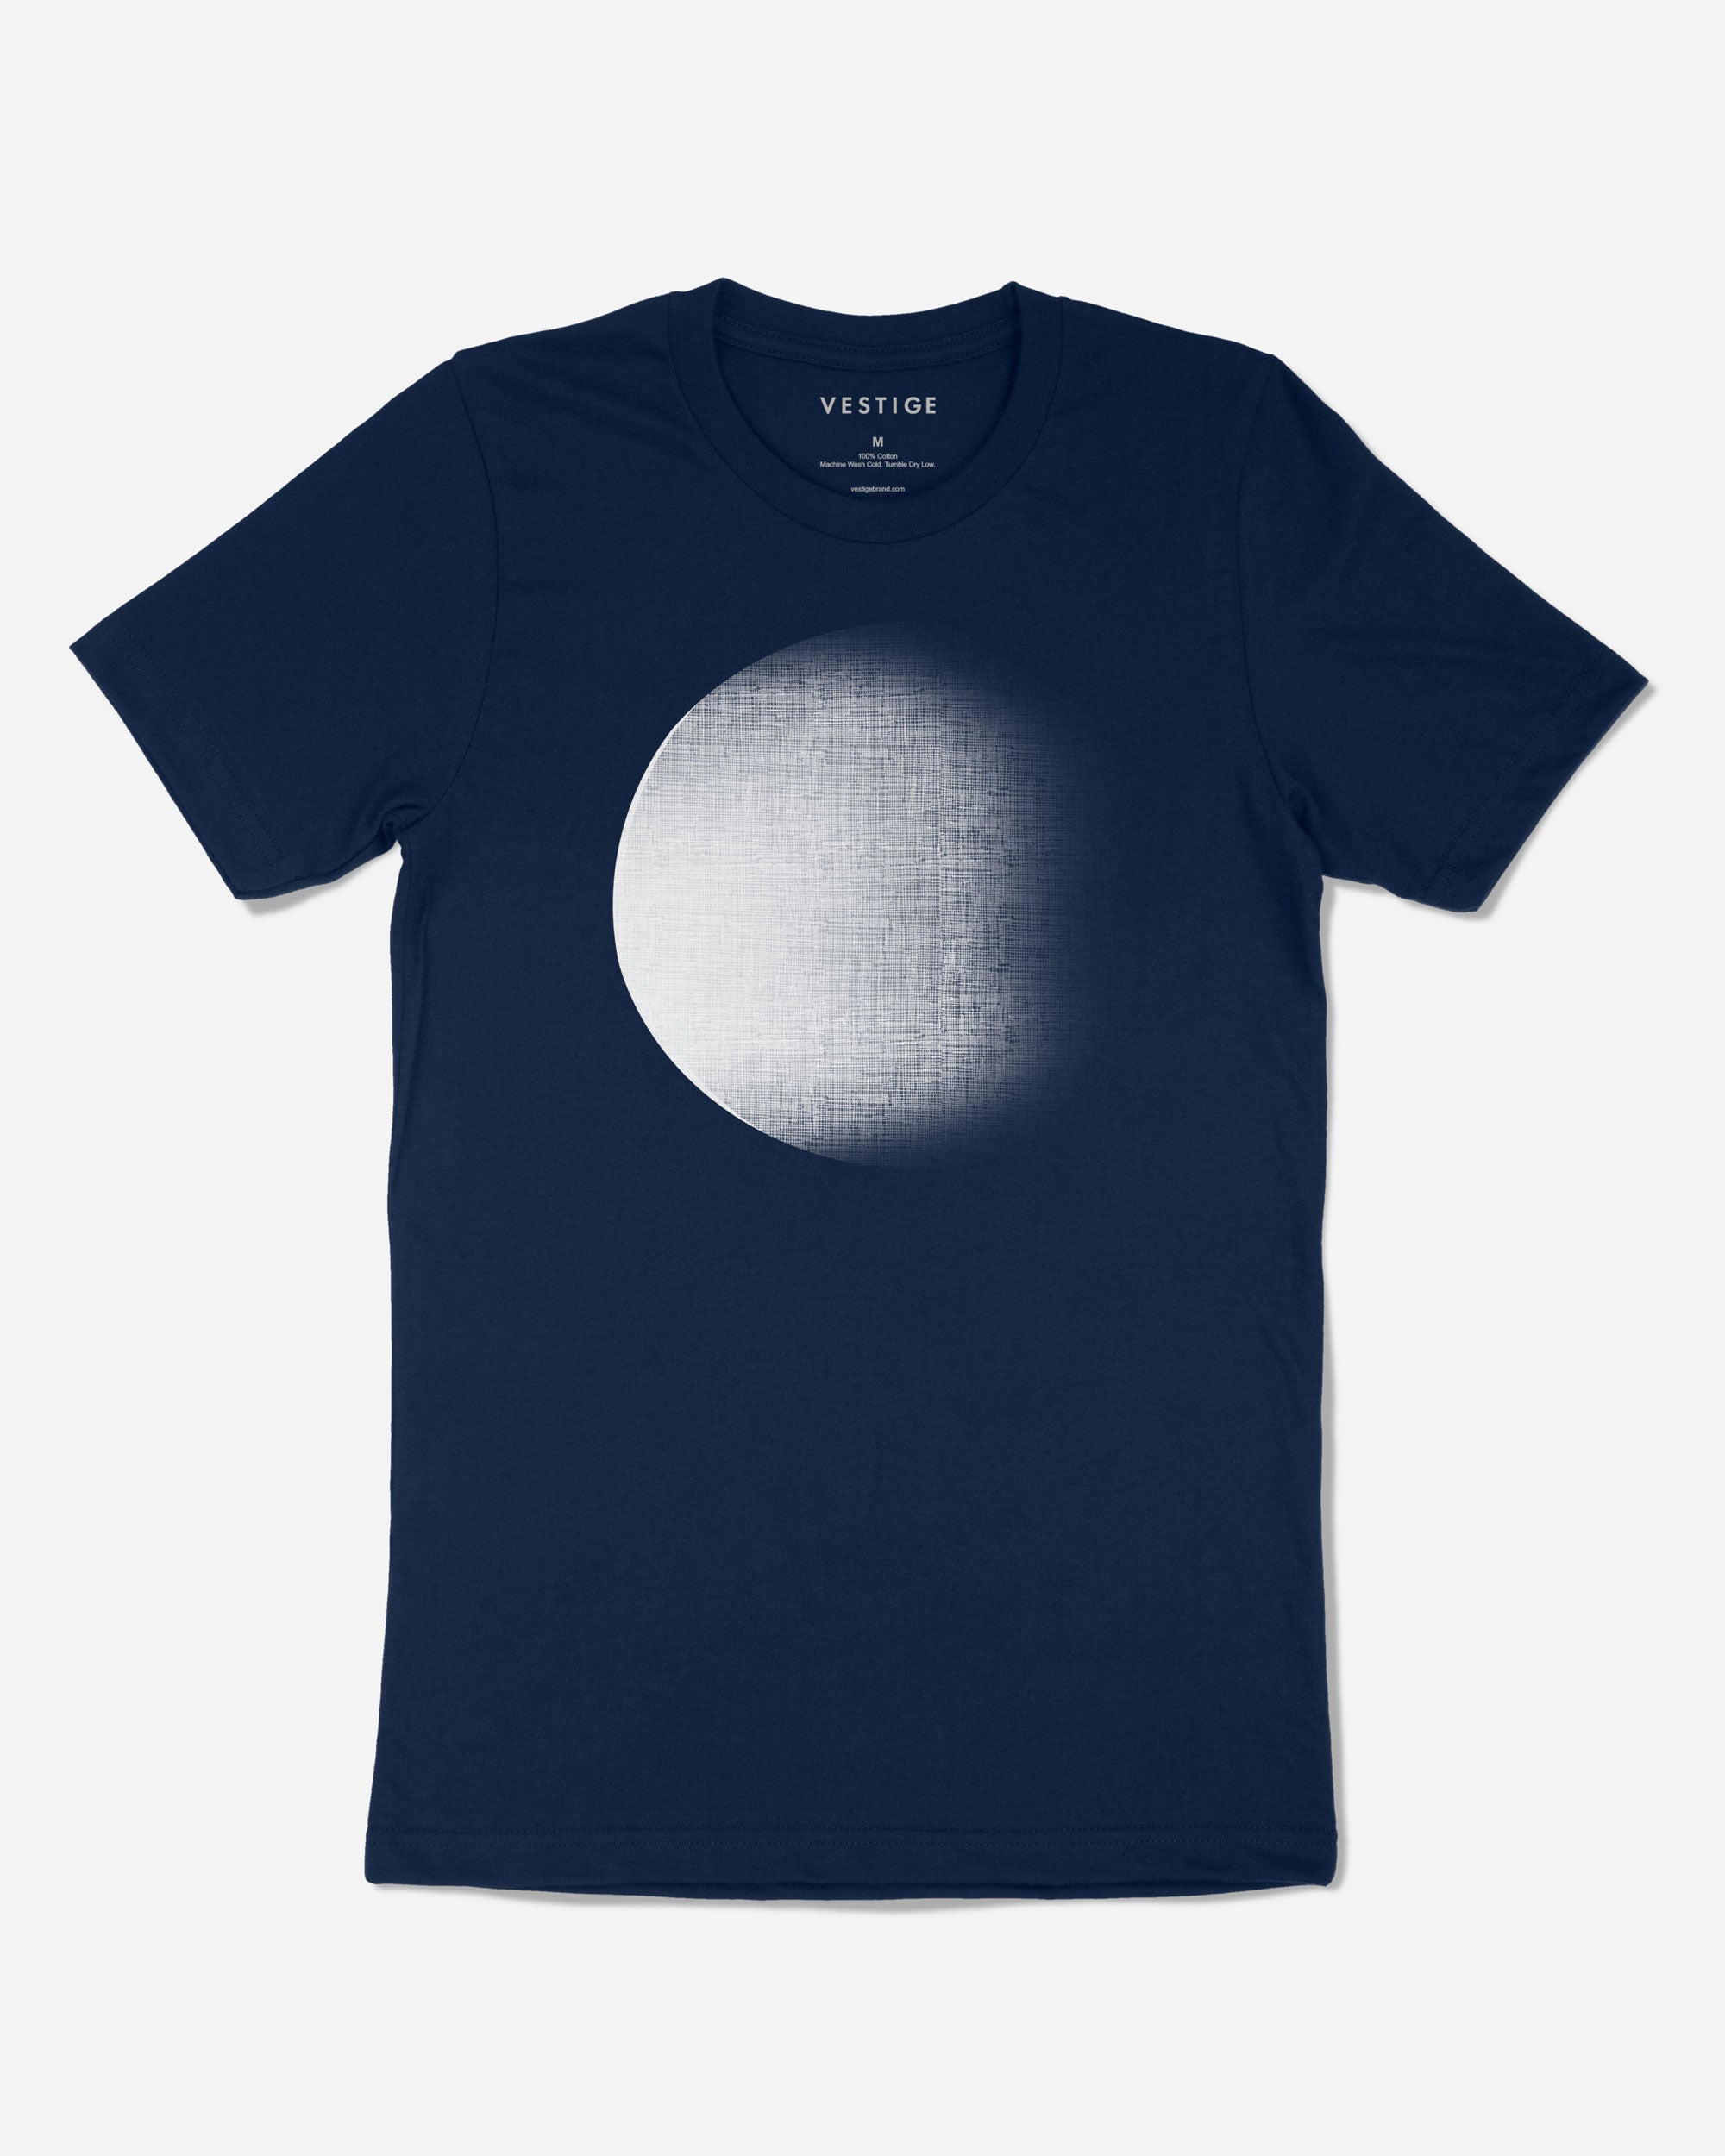 Dark Moon Blue T-Shirt, Navy